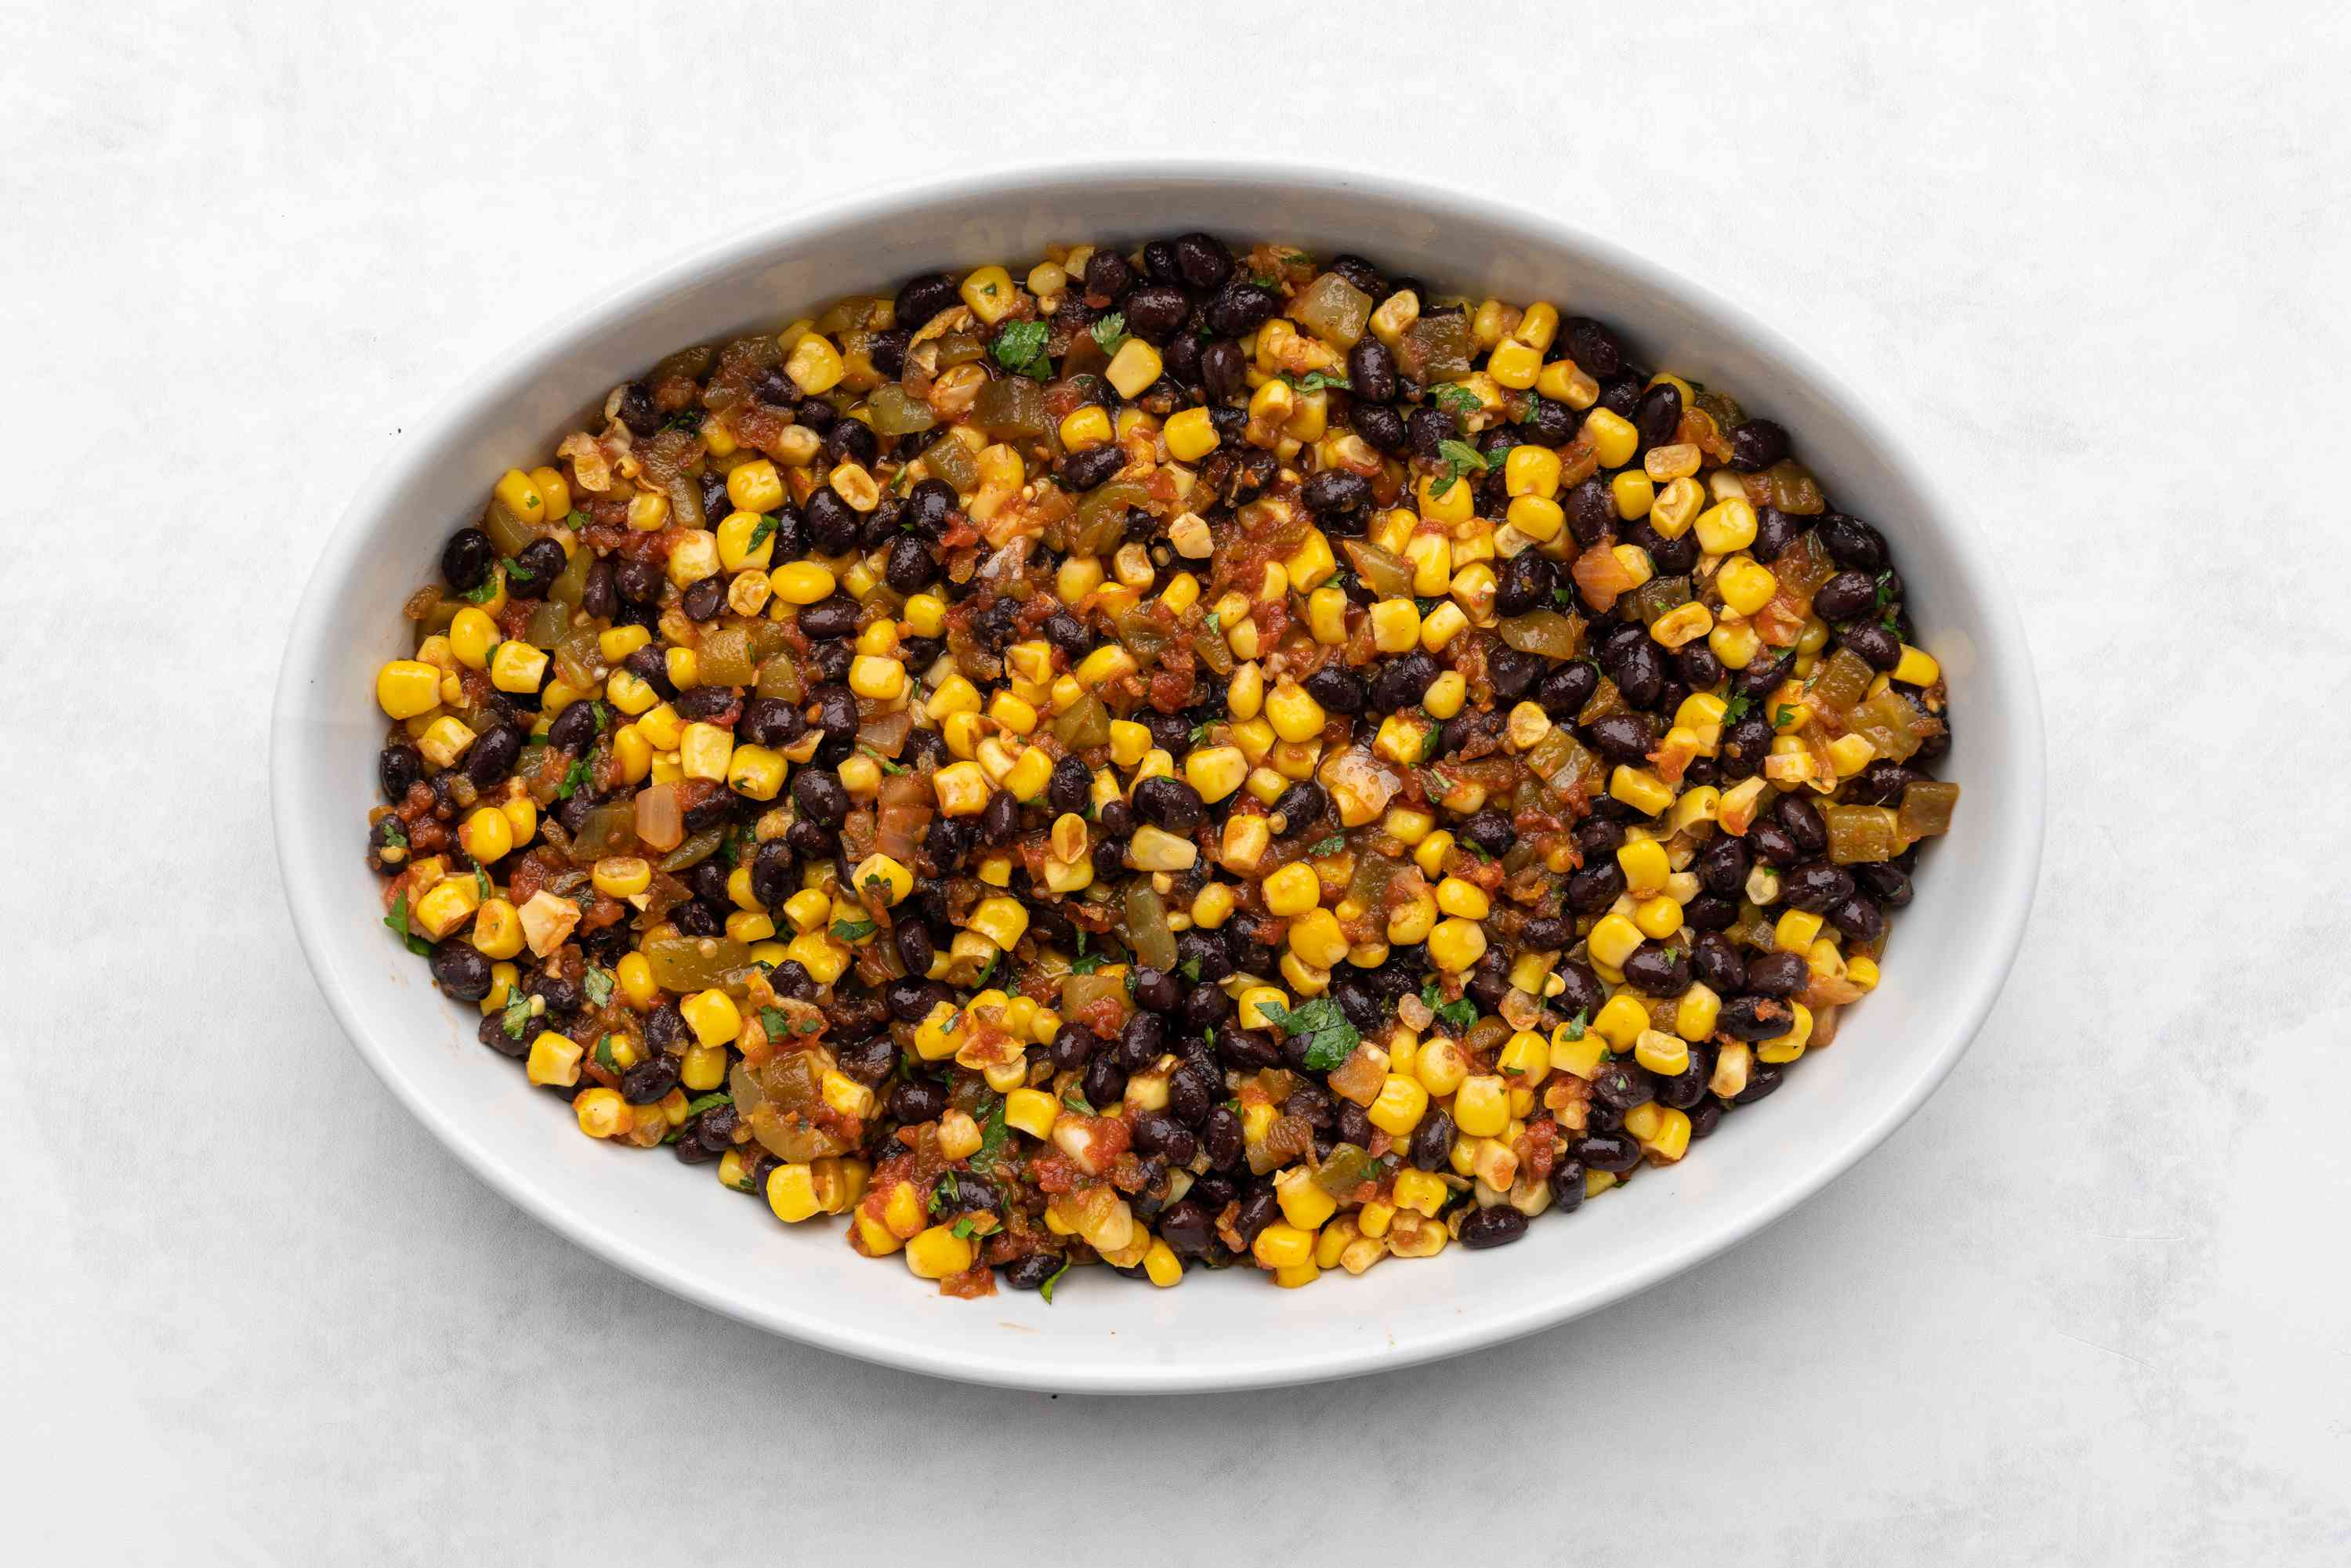 beans, corn and salsa in a casserole dish